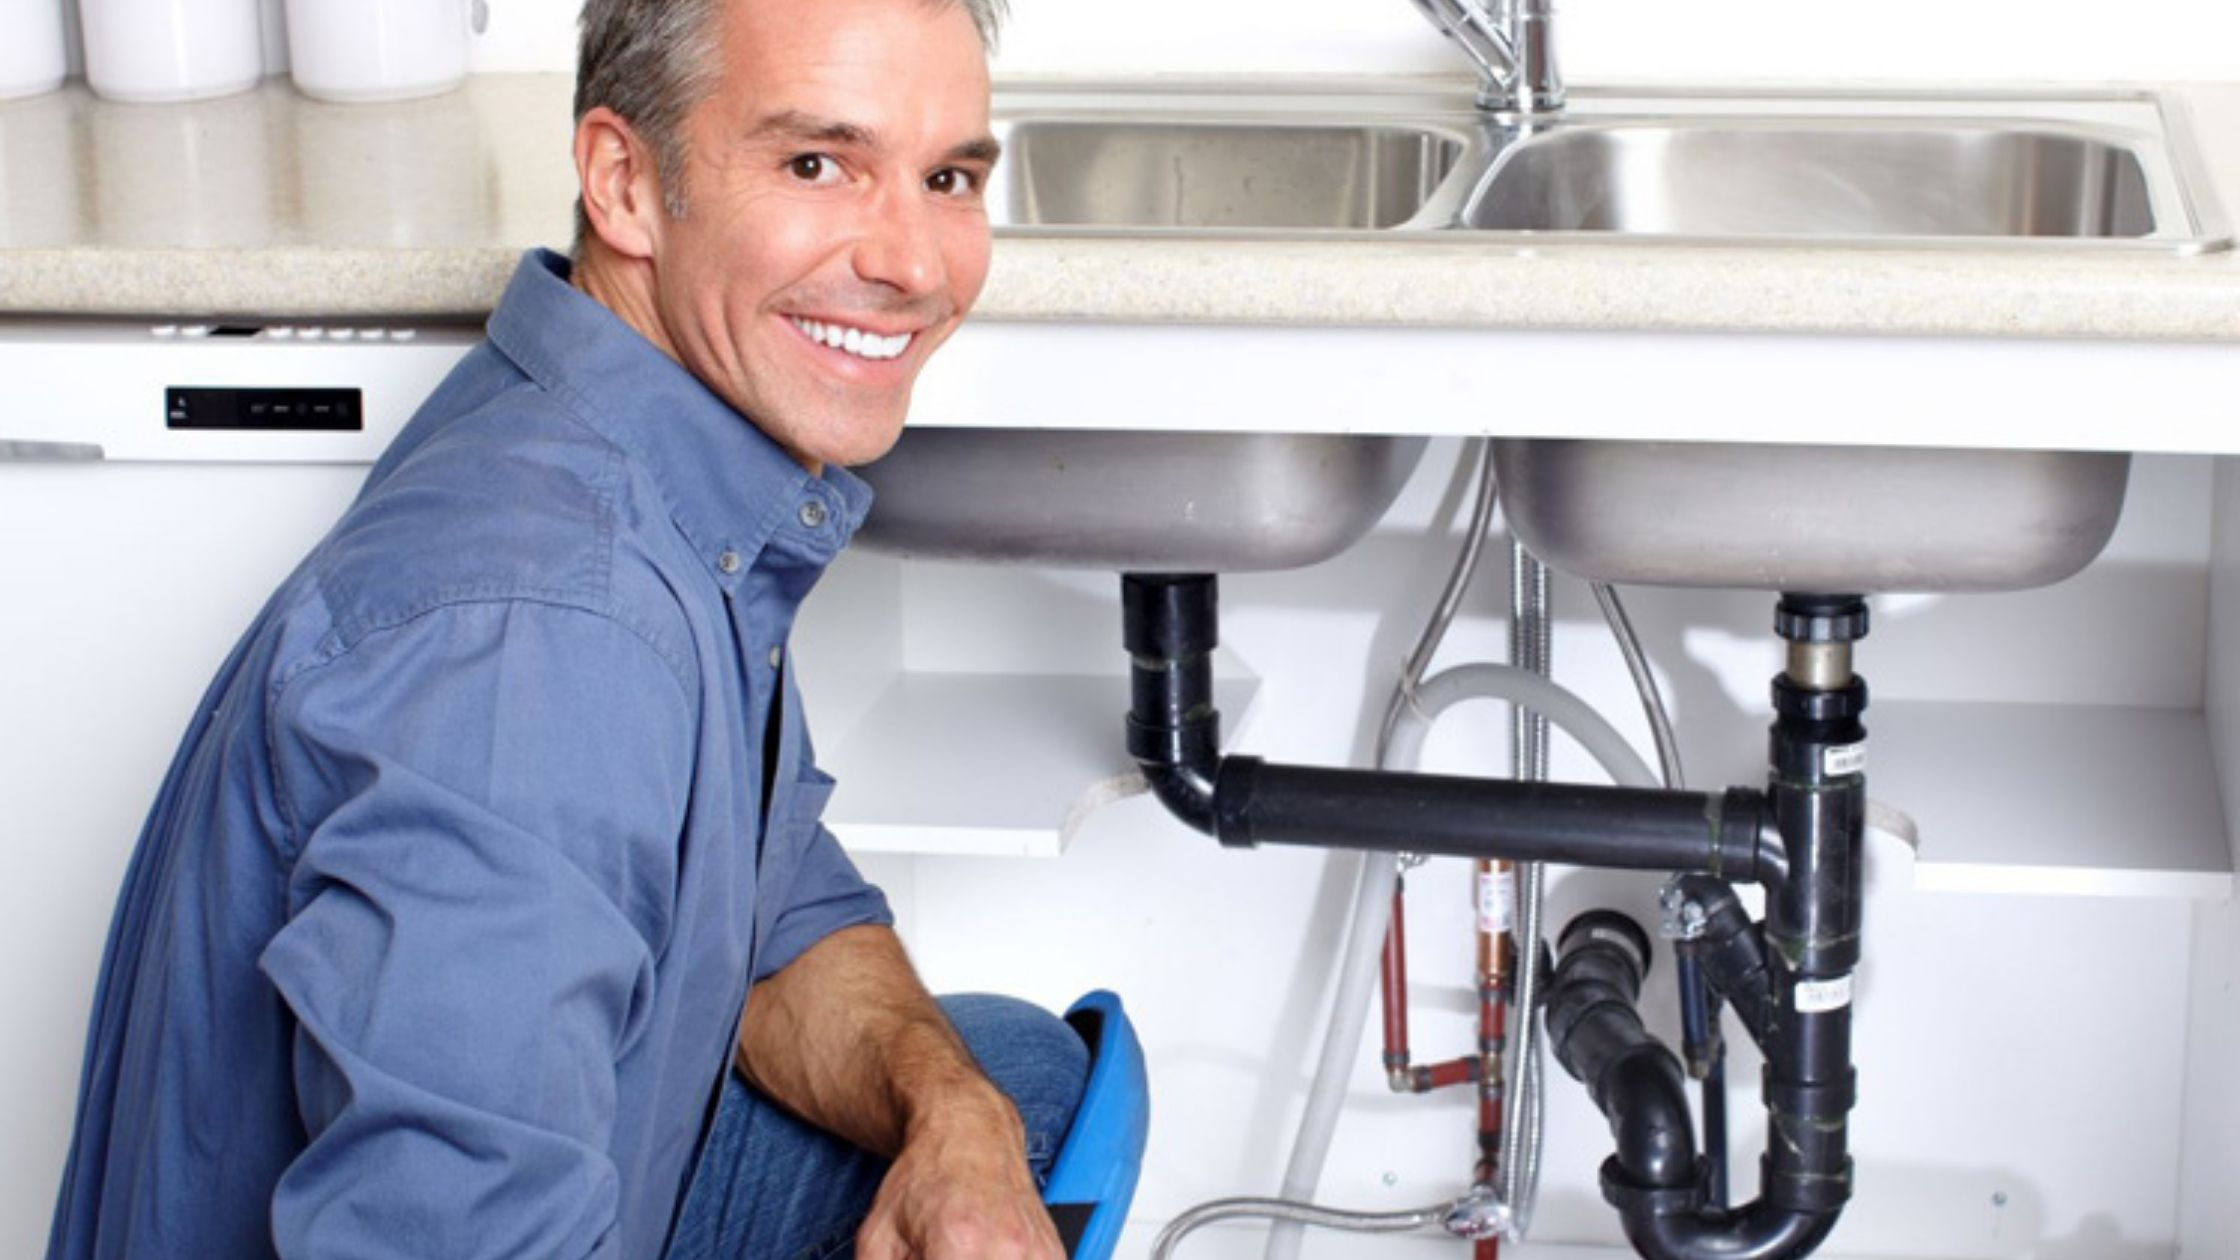 How much plumbers cost in the Waterloo region